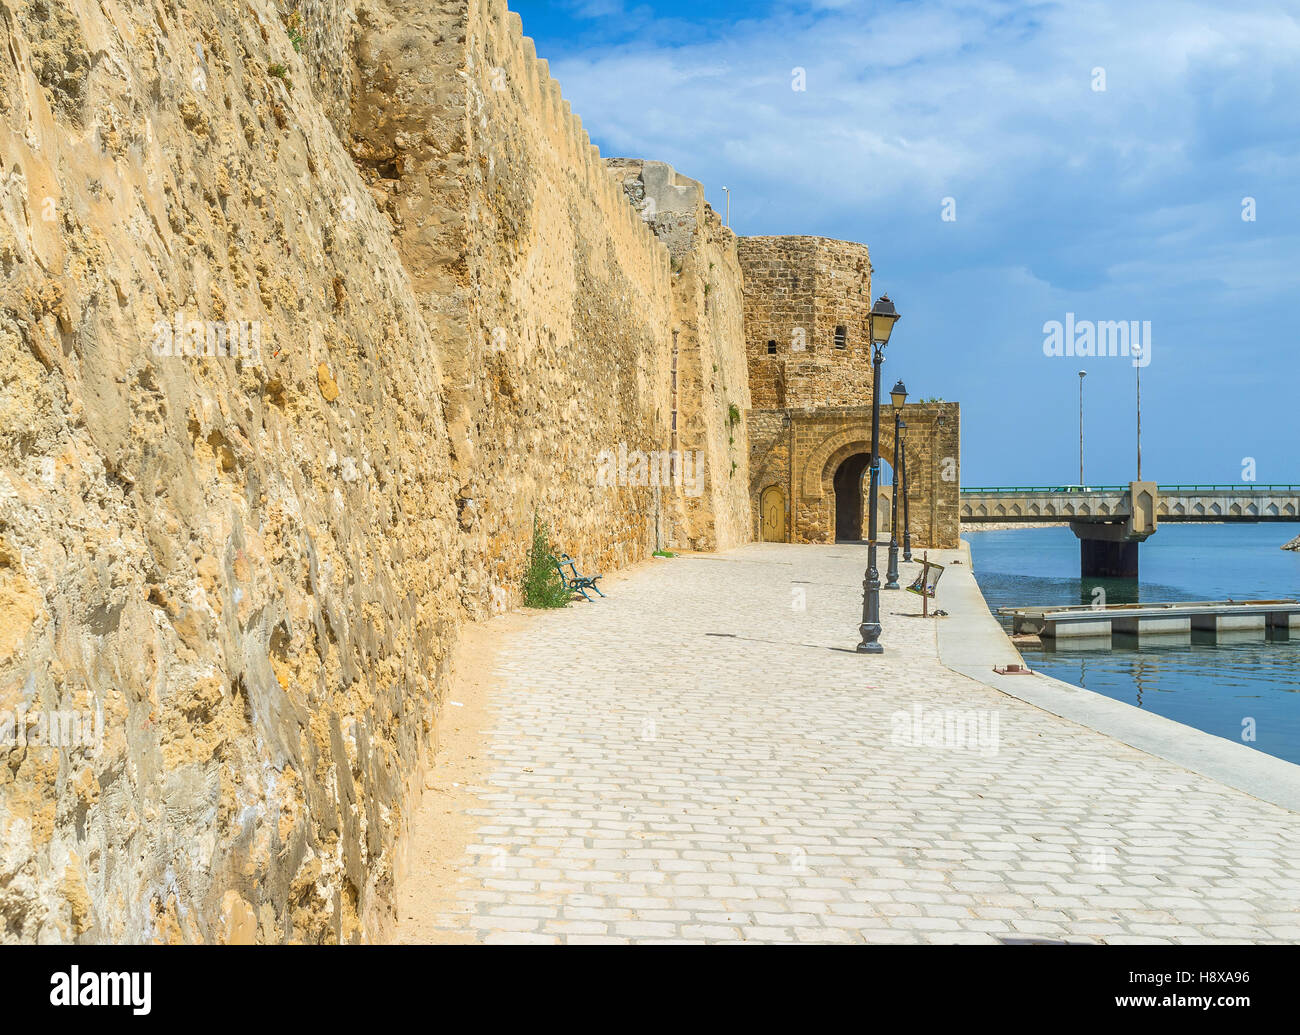 The stone rampart separates the old Medina from the fishing port, Bizerte, Tunisia. - Stock Image